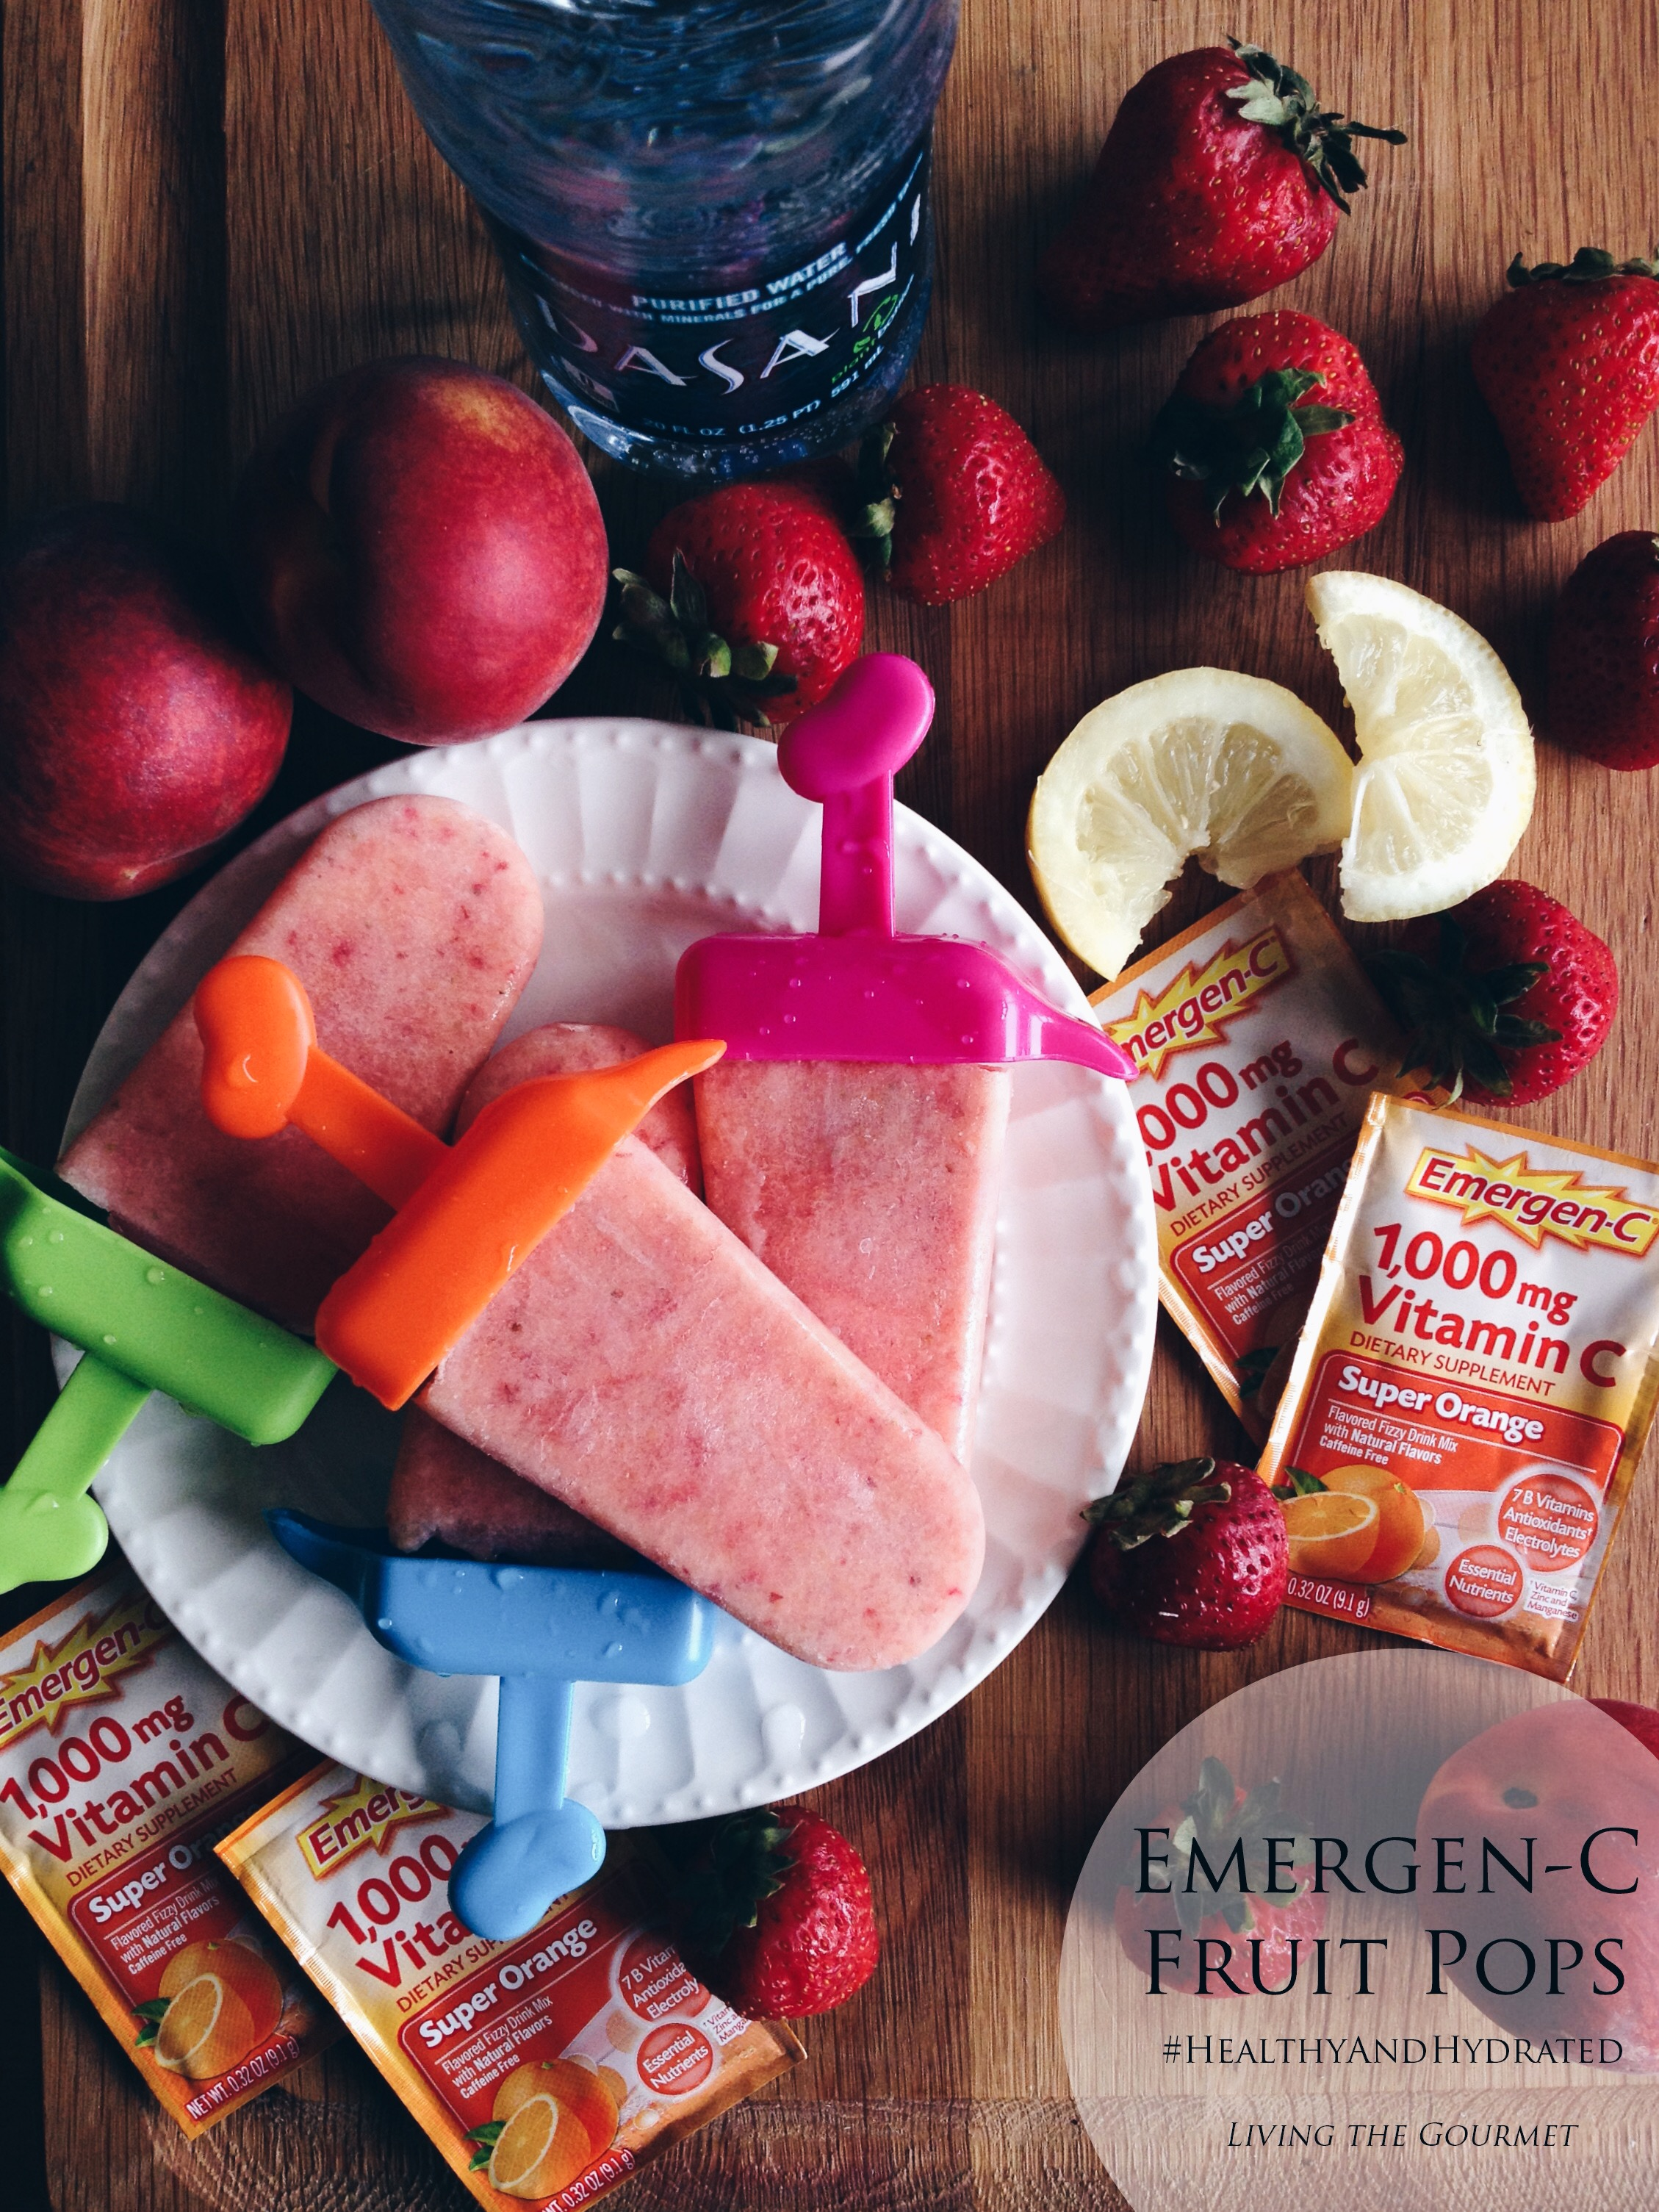 Living the Gourmet: Emergen-C Fruit Pops | #HealthyAndHydrated #Ad